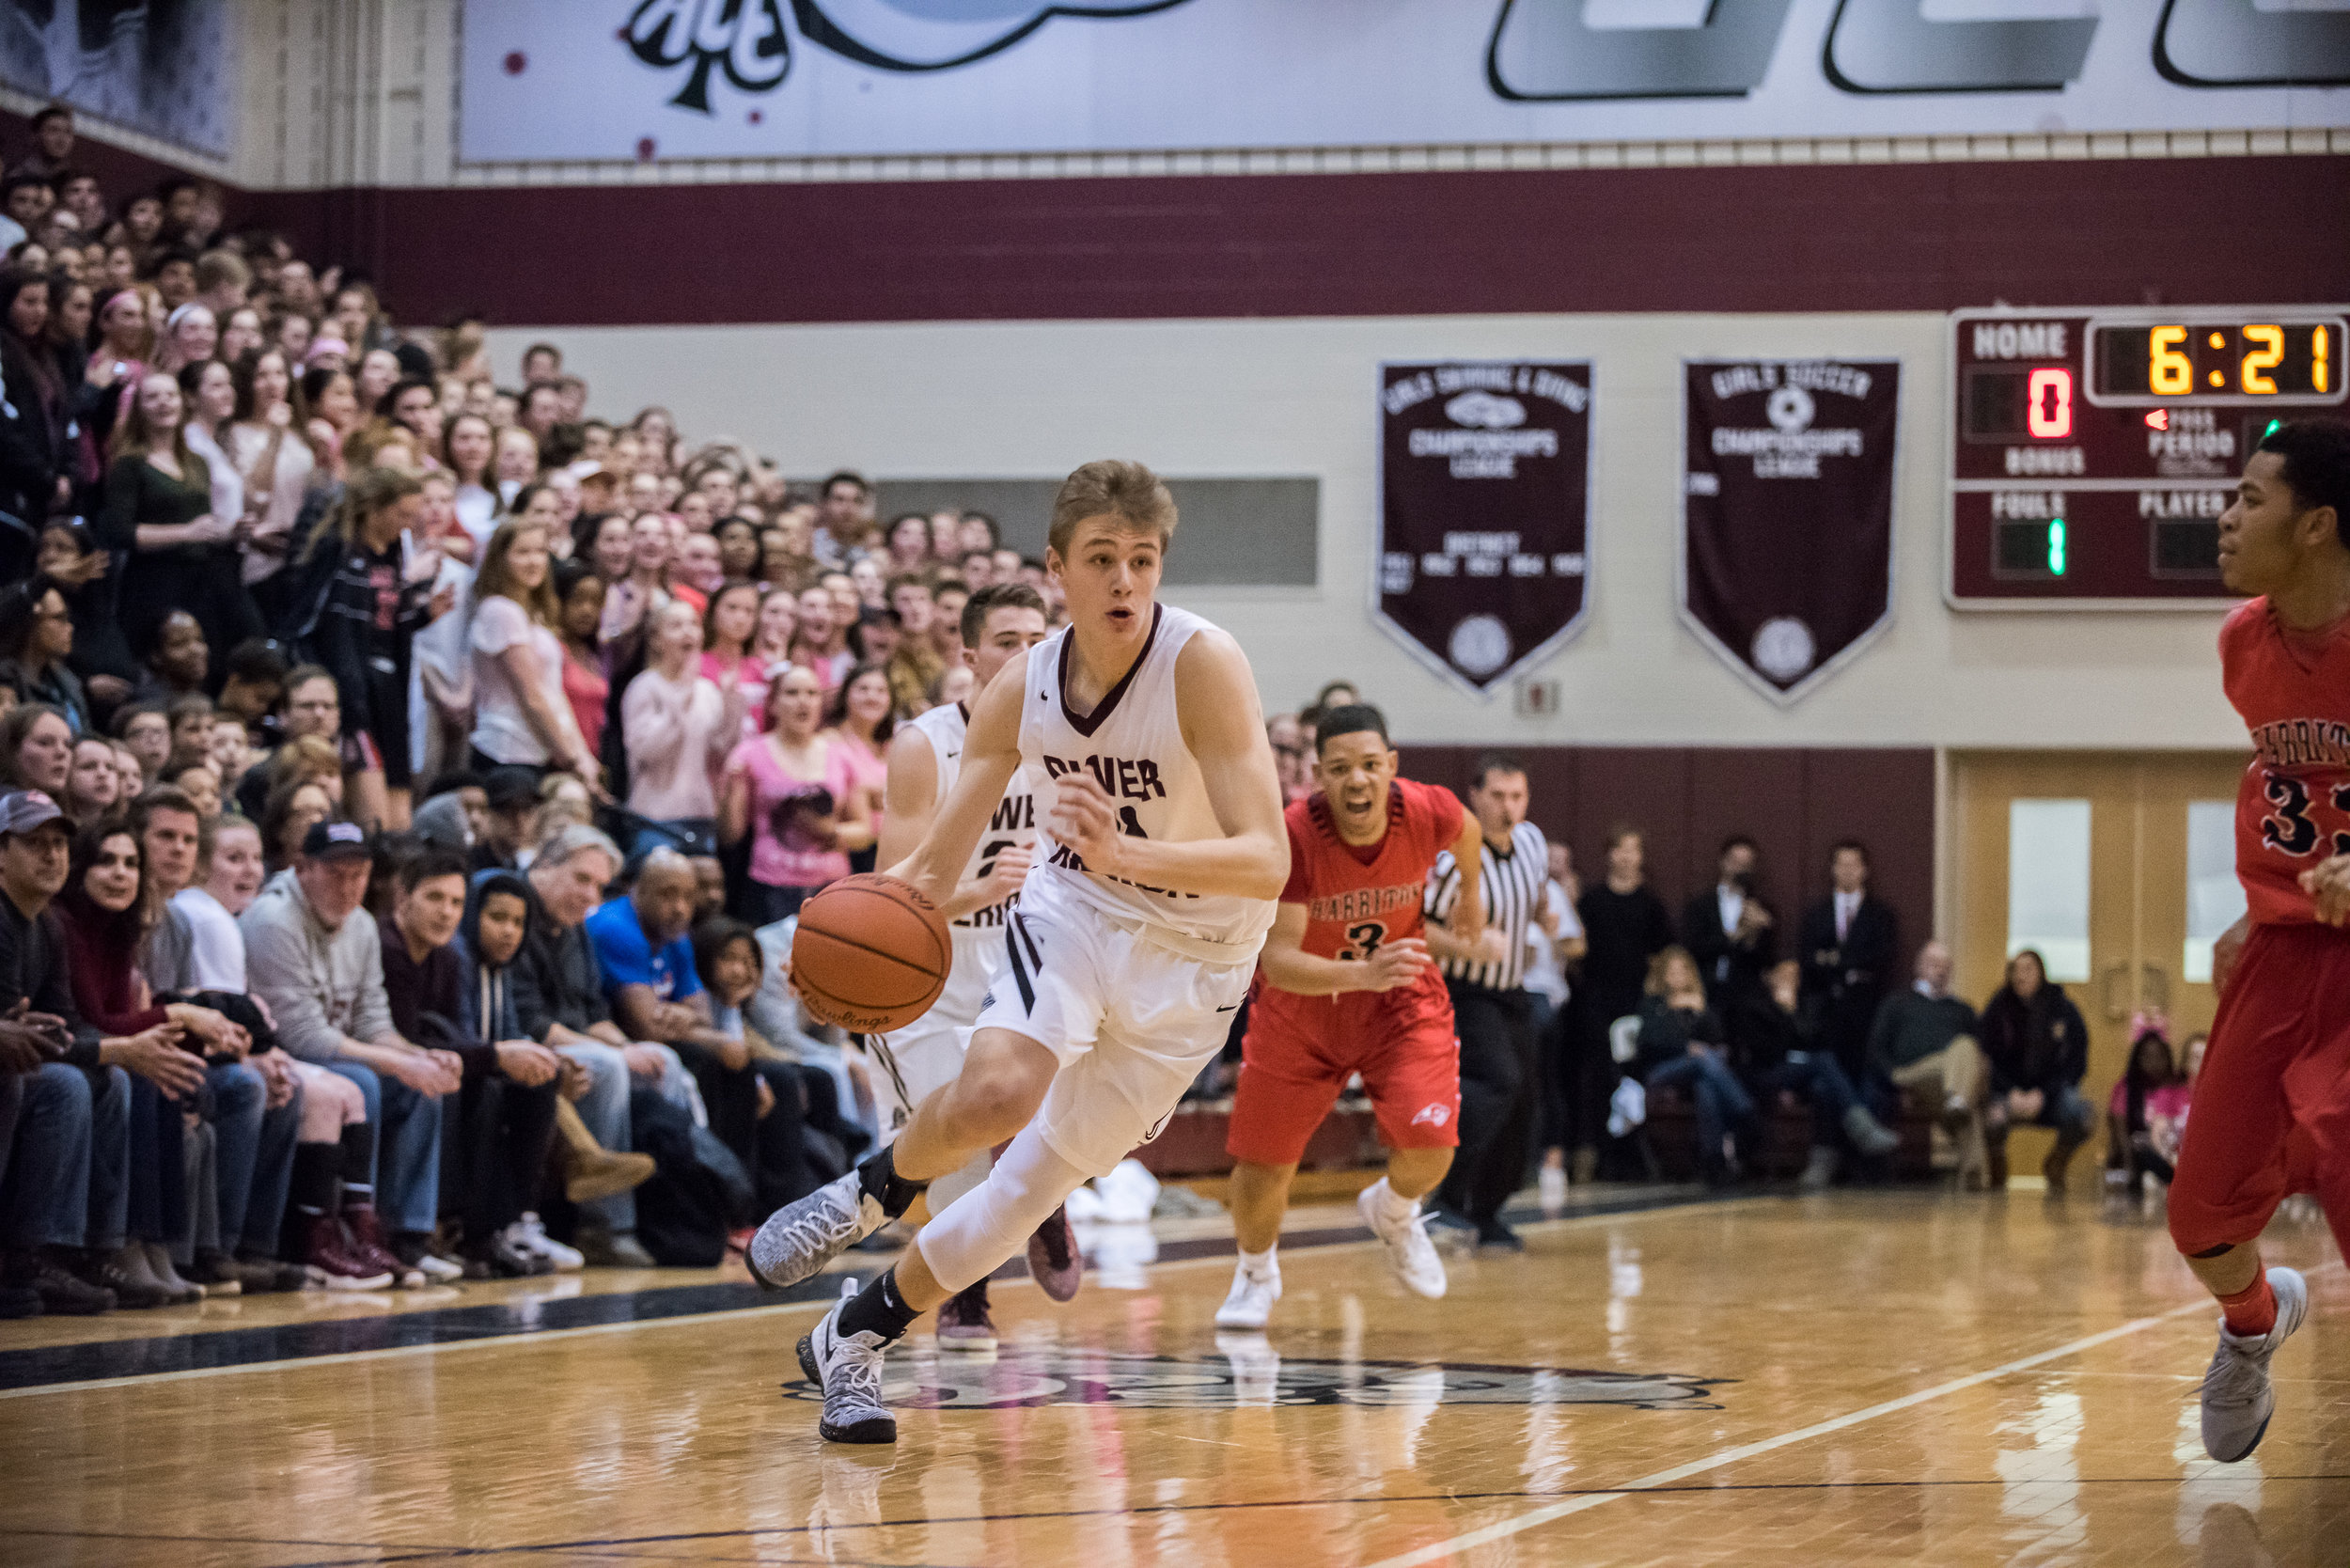 Lower_Merion_Basketball-121.jpg